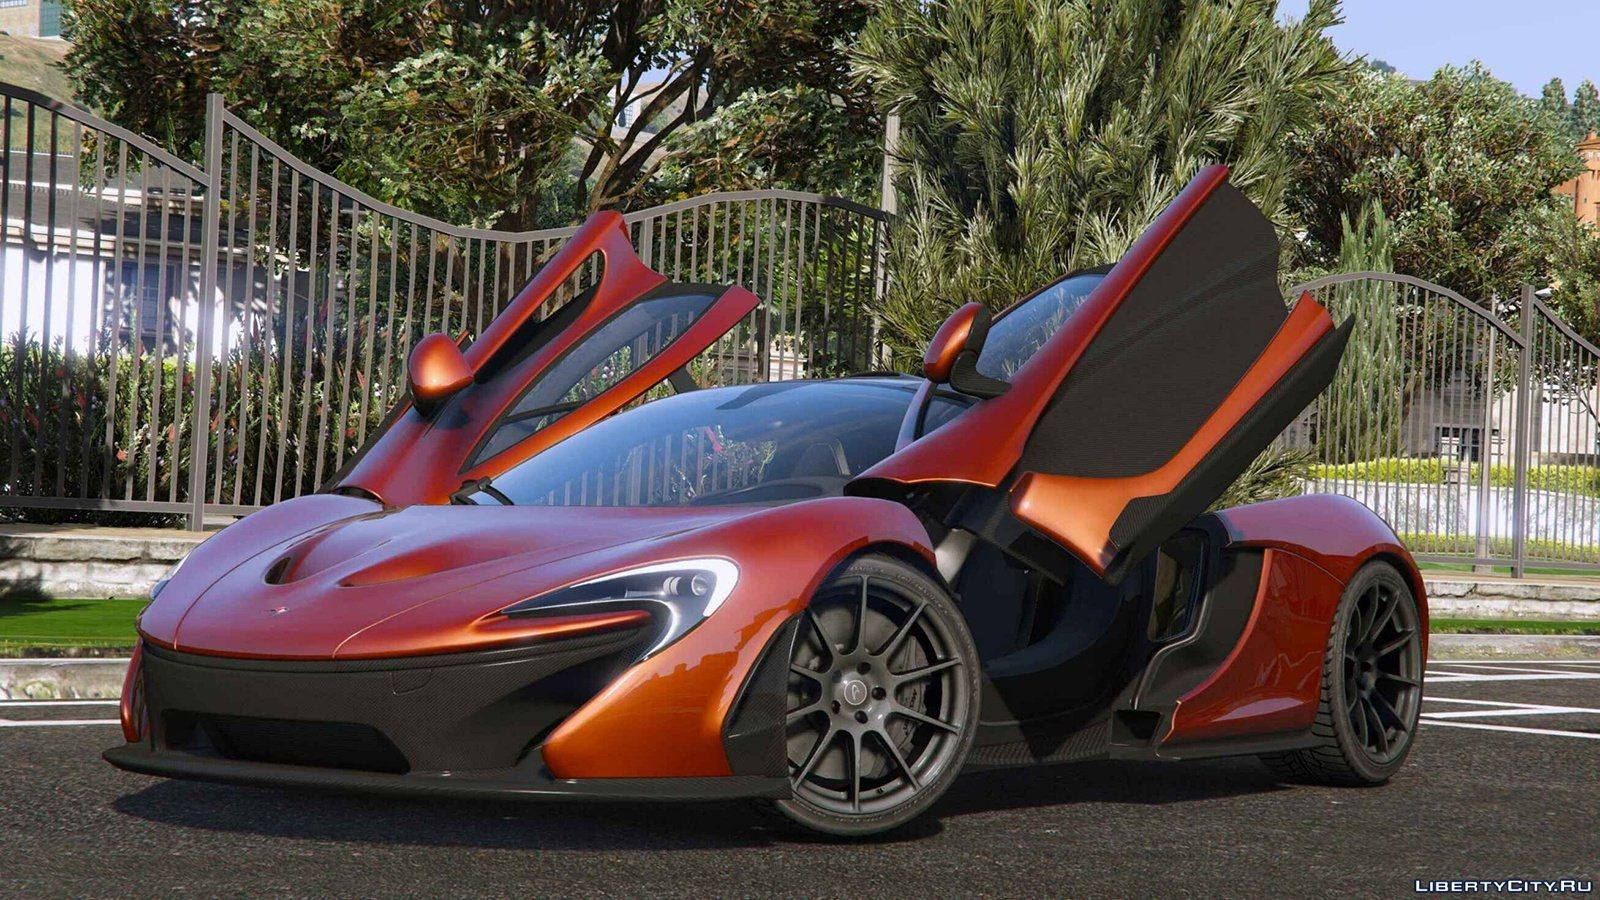 2014 McLaren P1 [Add-On Replace] v2.6 for GTA 5